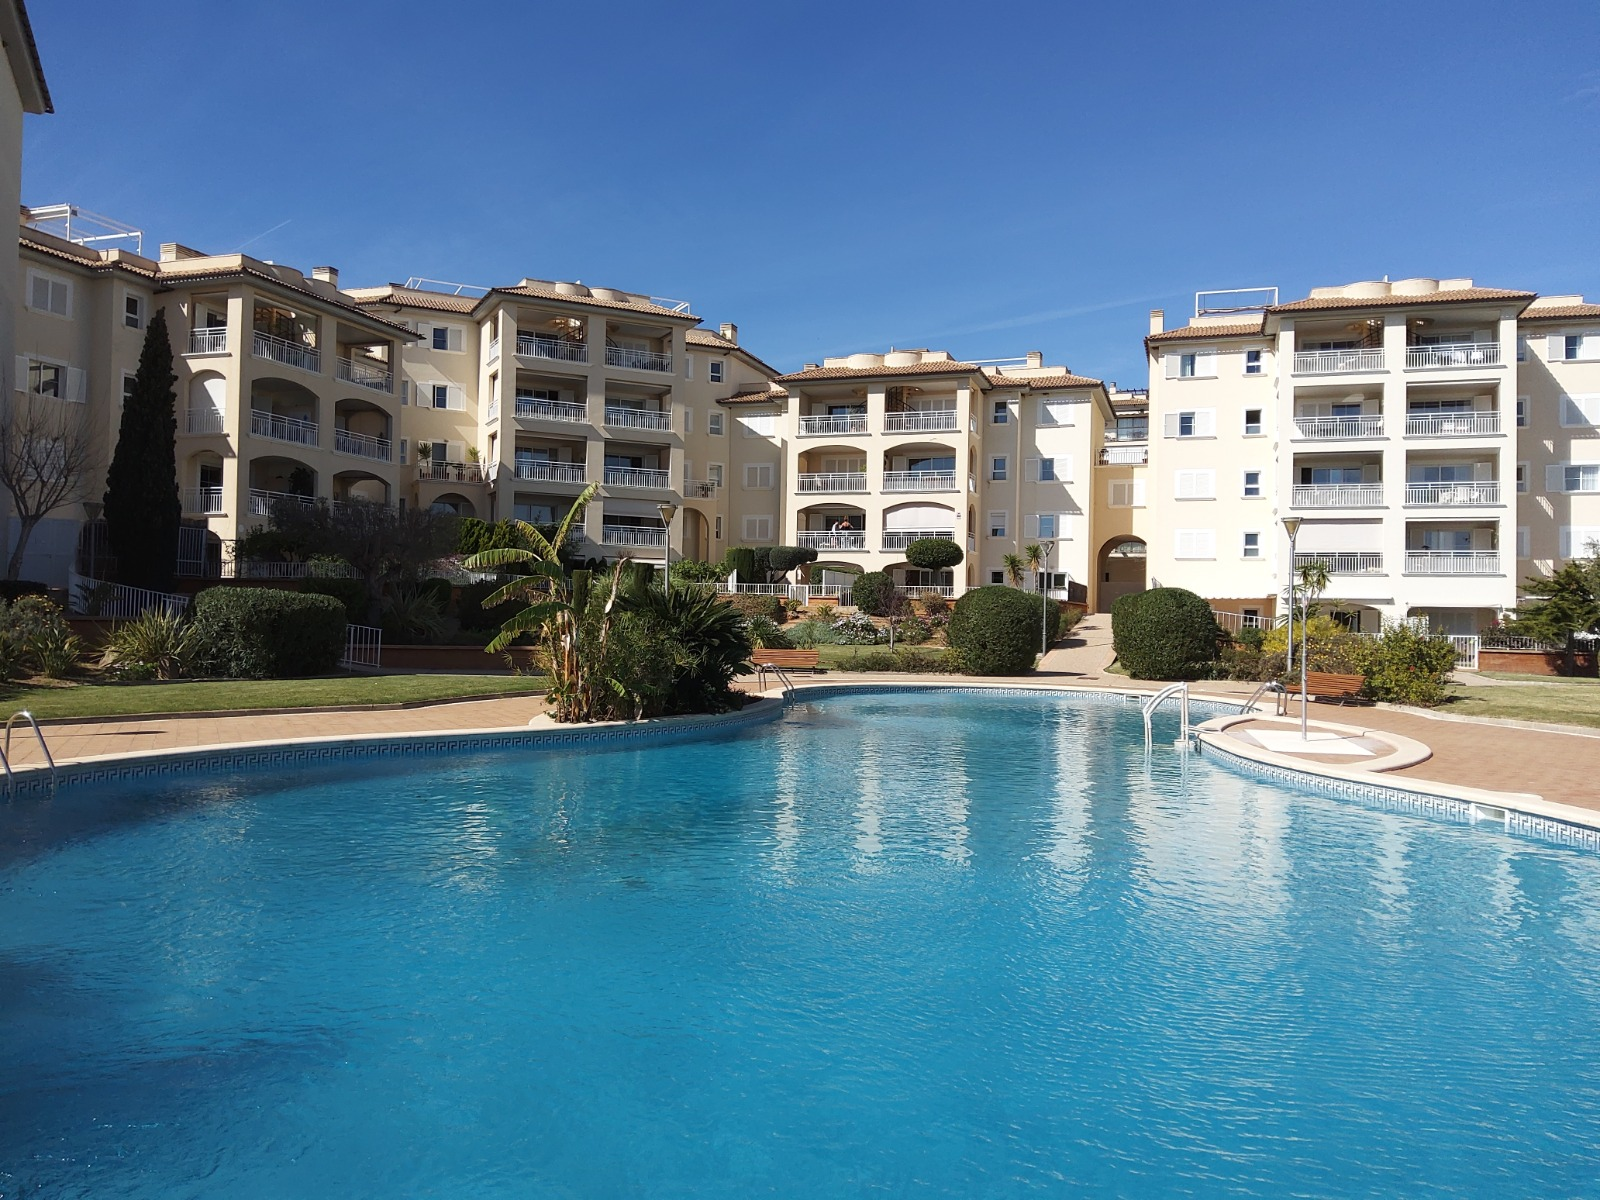 Exclusive apartment close to Son Vida golf course, pool, tennis cort